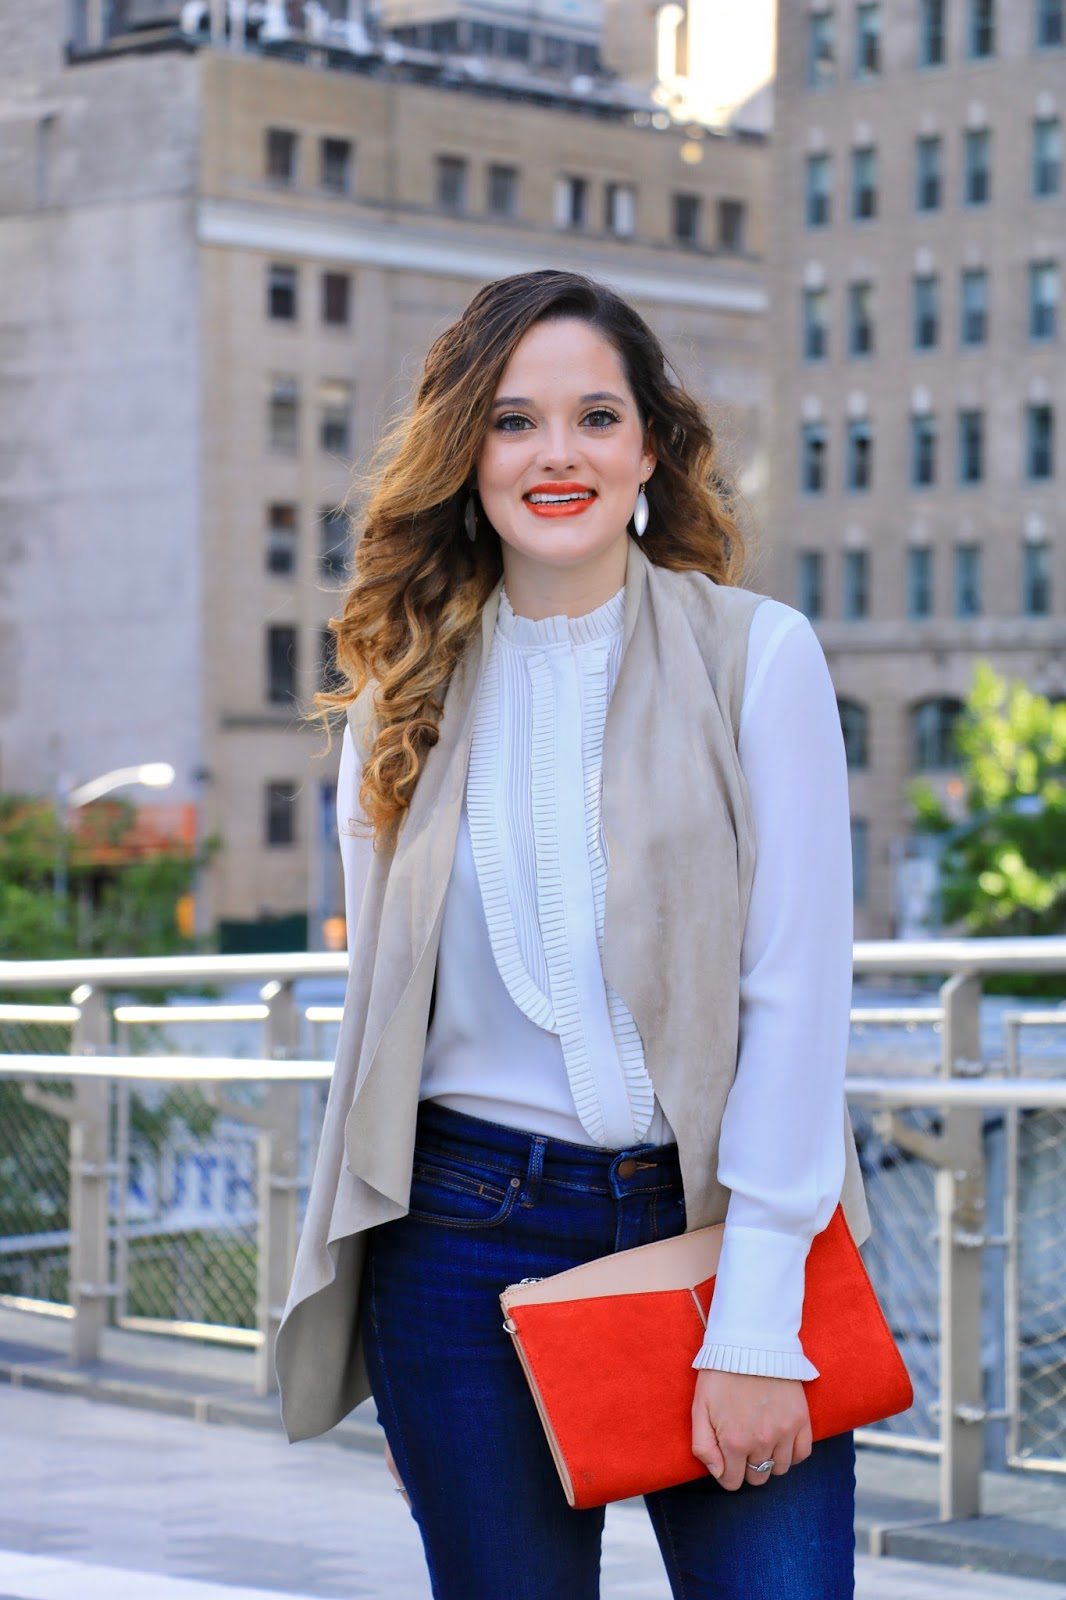 Nyc fashion blogger Kathleen Harper showing work outfit ideas